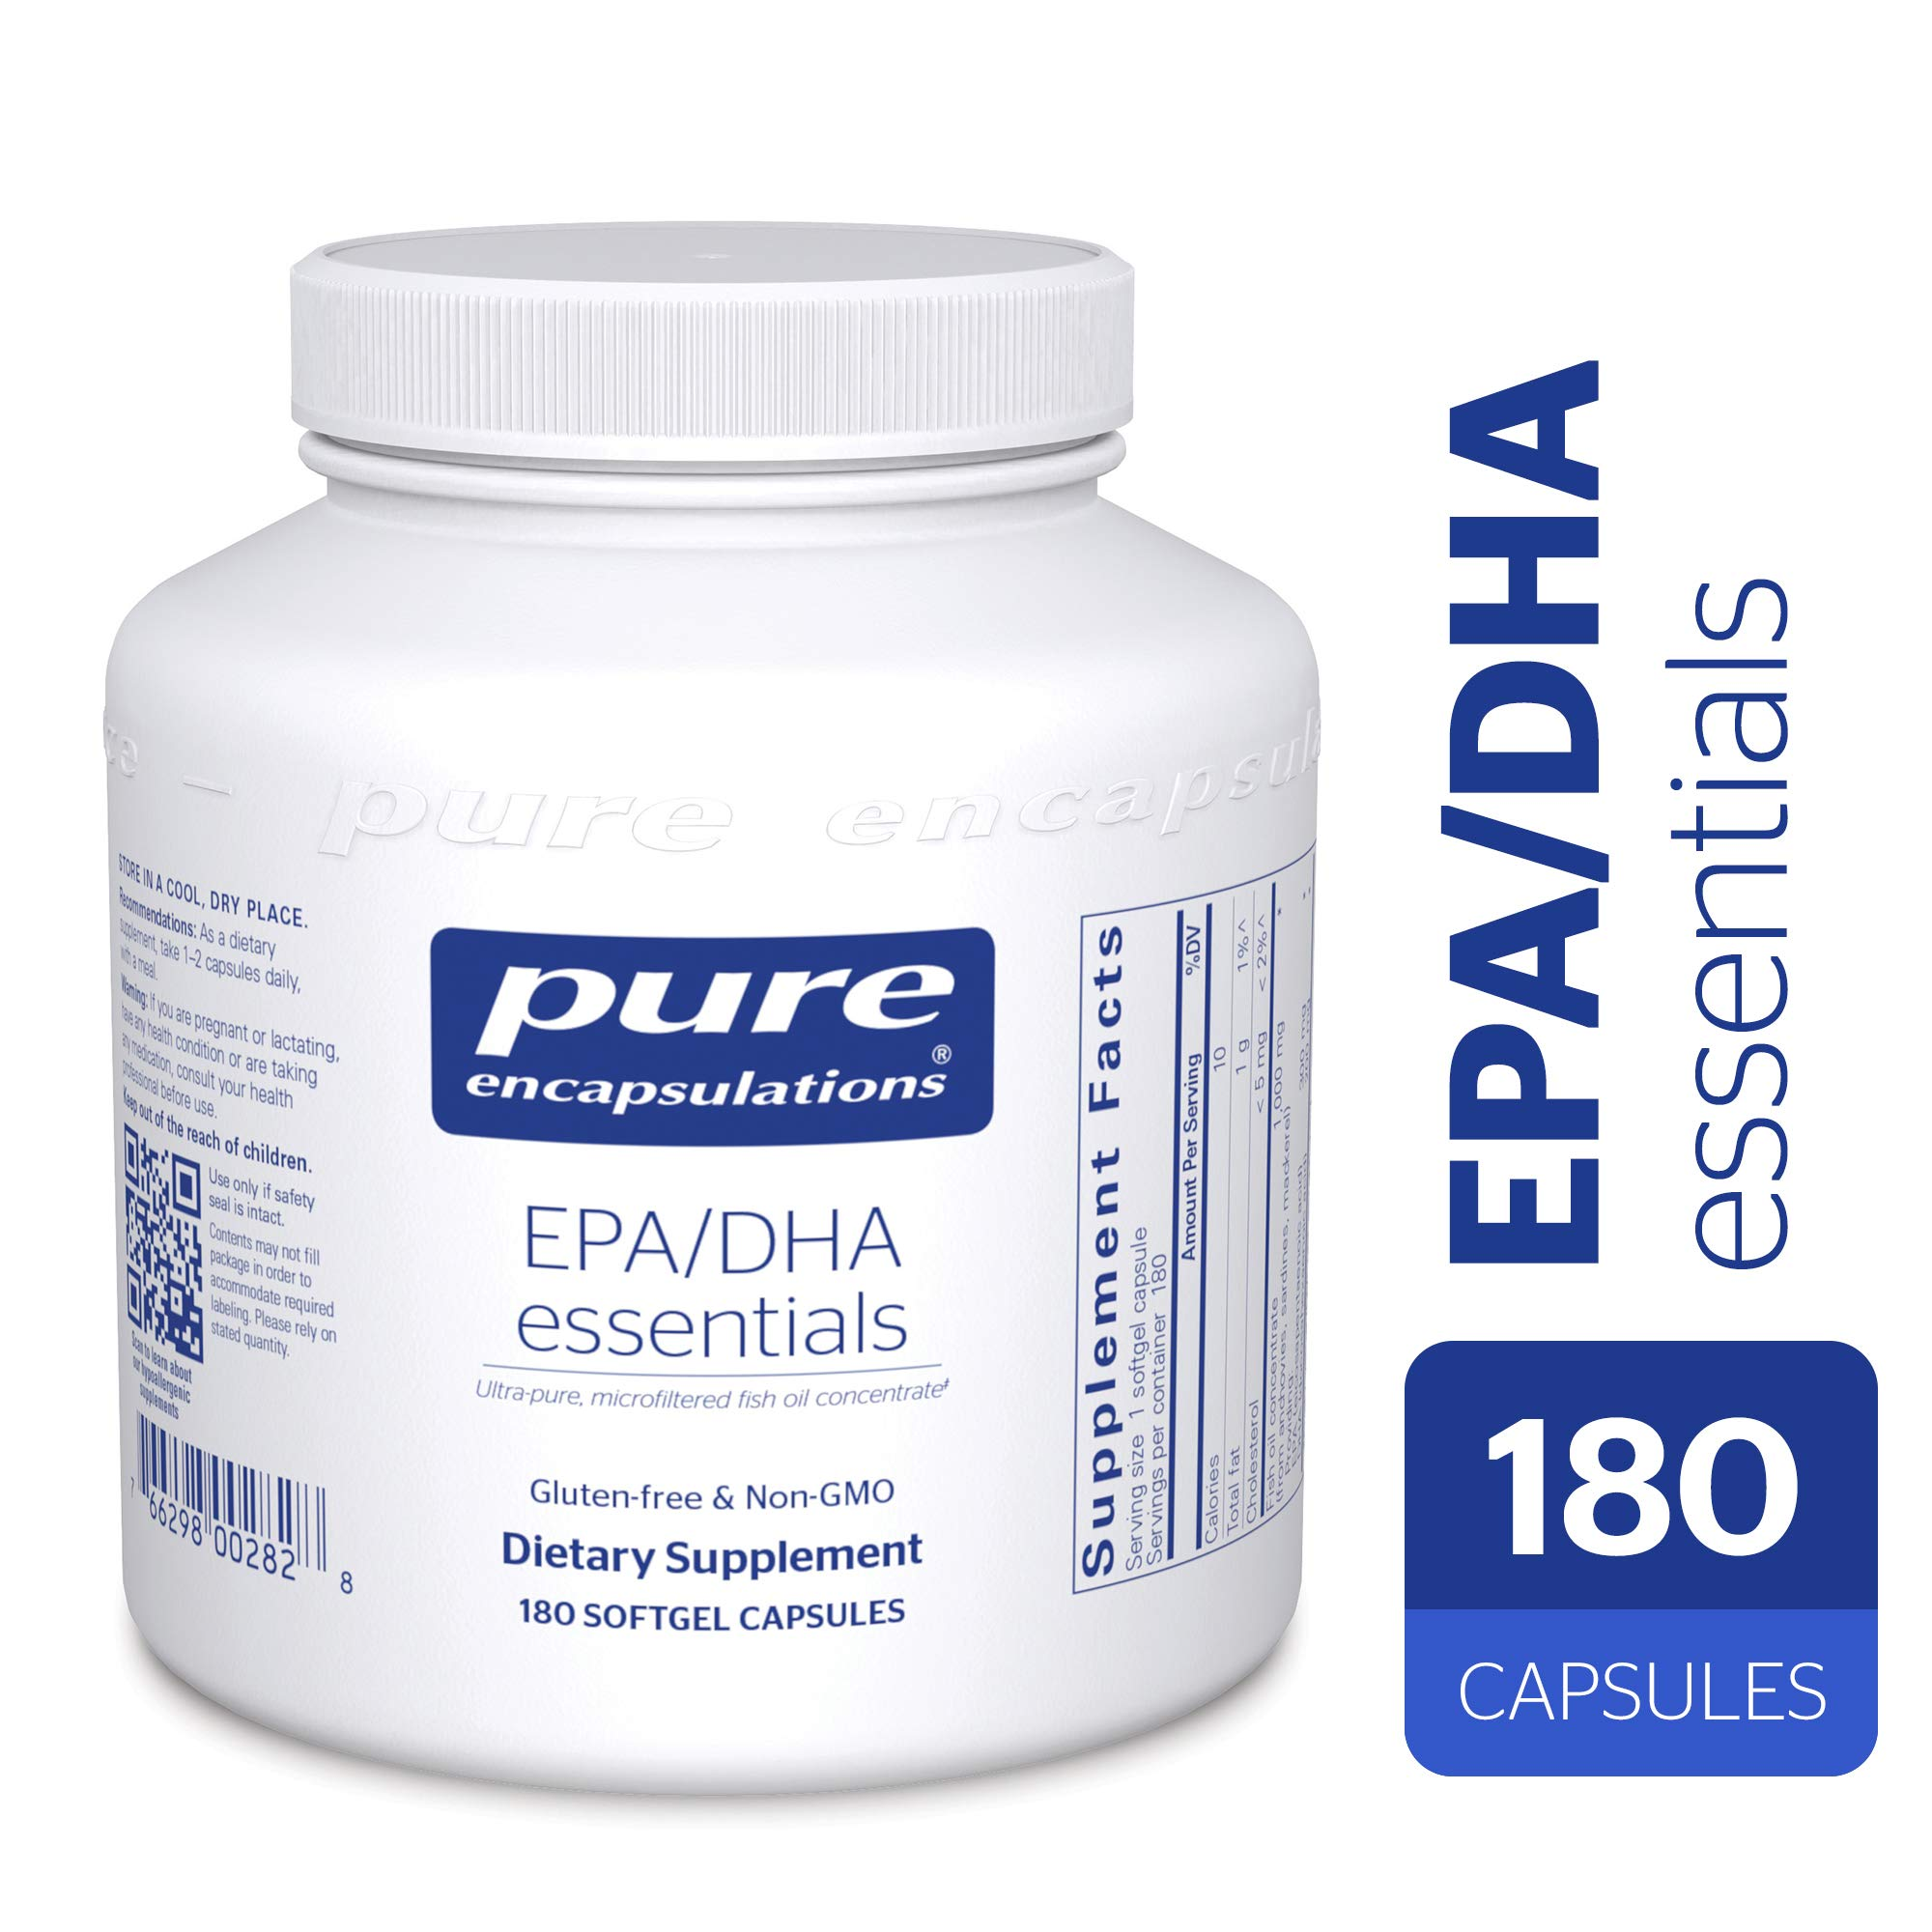 Pure Encapsulations - EPA/DHA Essentials - Ultra-Pure, Molecularly Distilled Fish Oil Concentrate - 180 Softgel Capsules by Pure Encapsulations (Image #1)